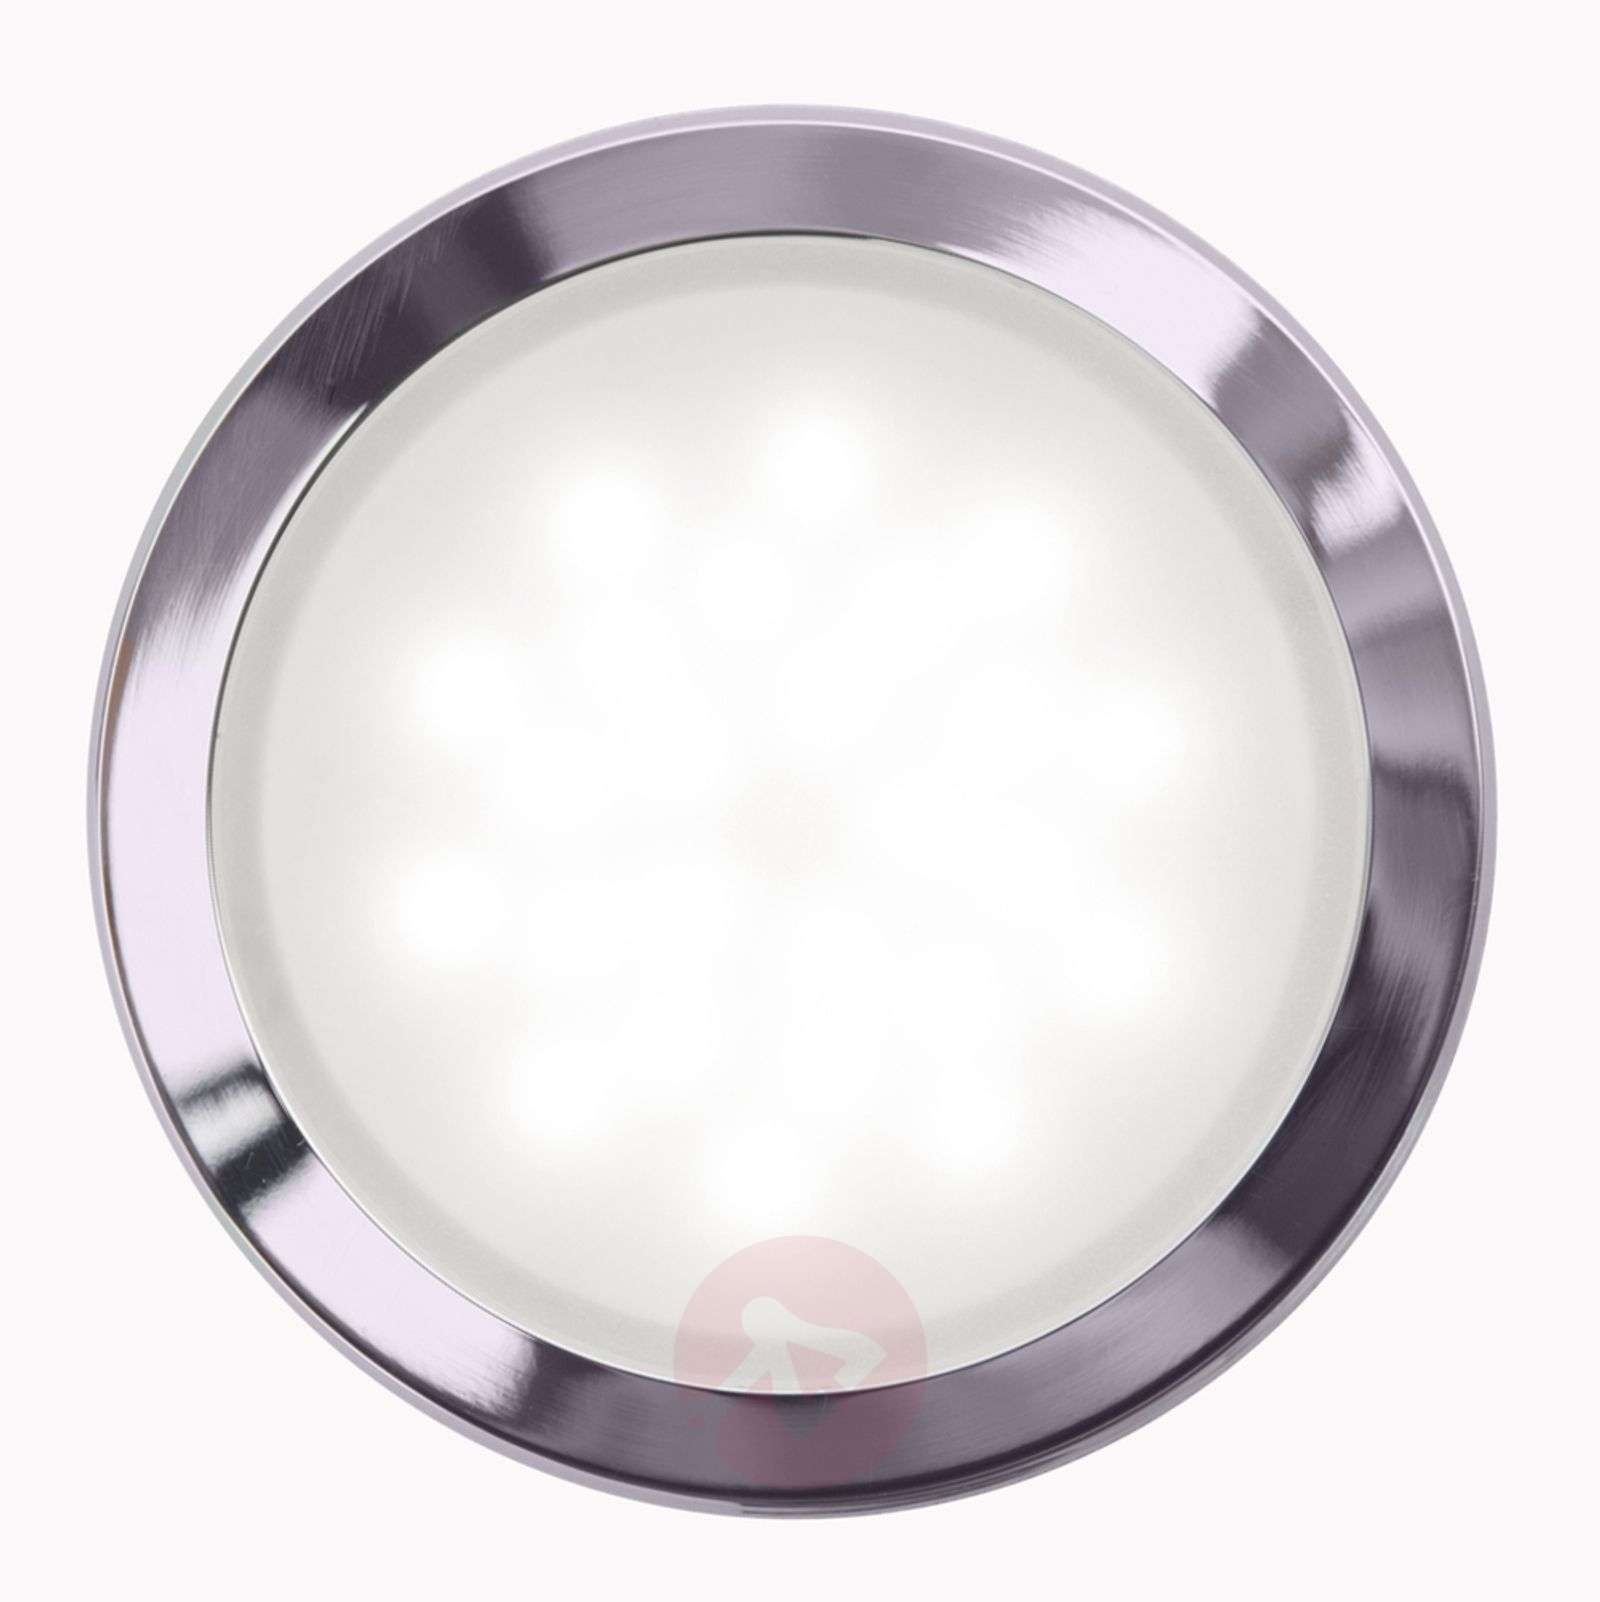 Plafonnier encastrable LED rond Finnian, dimmable-7255033-01